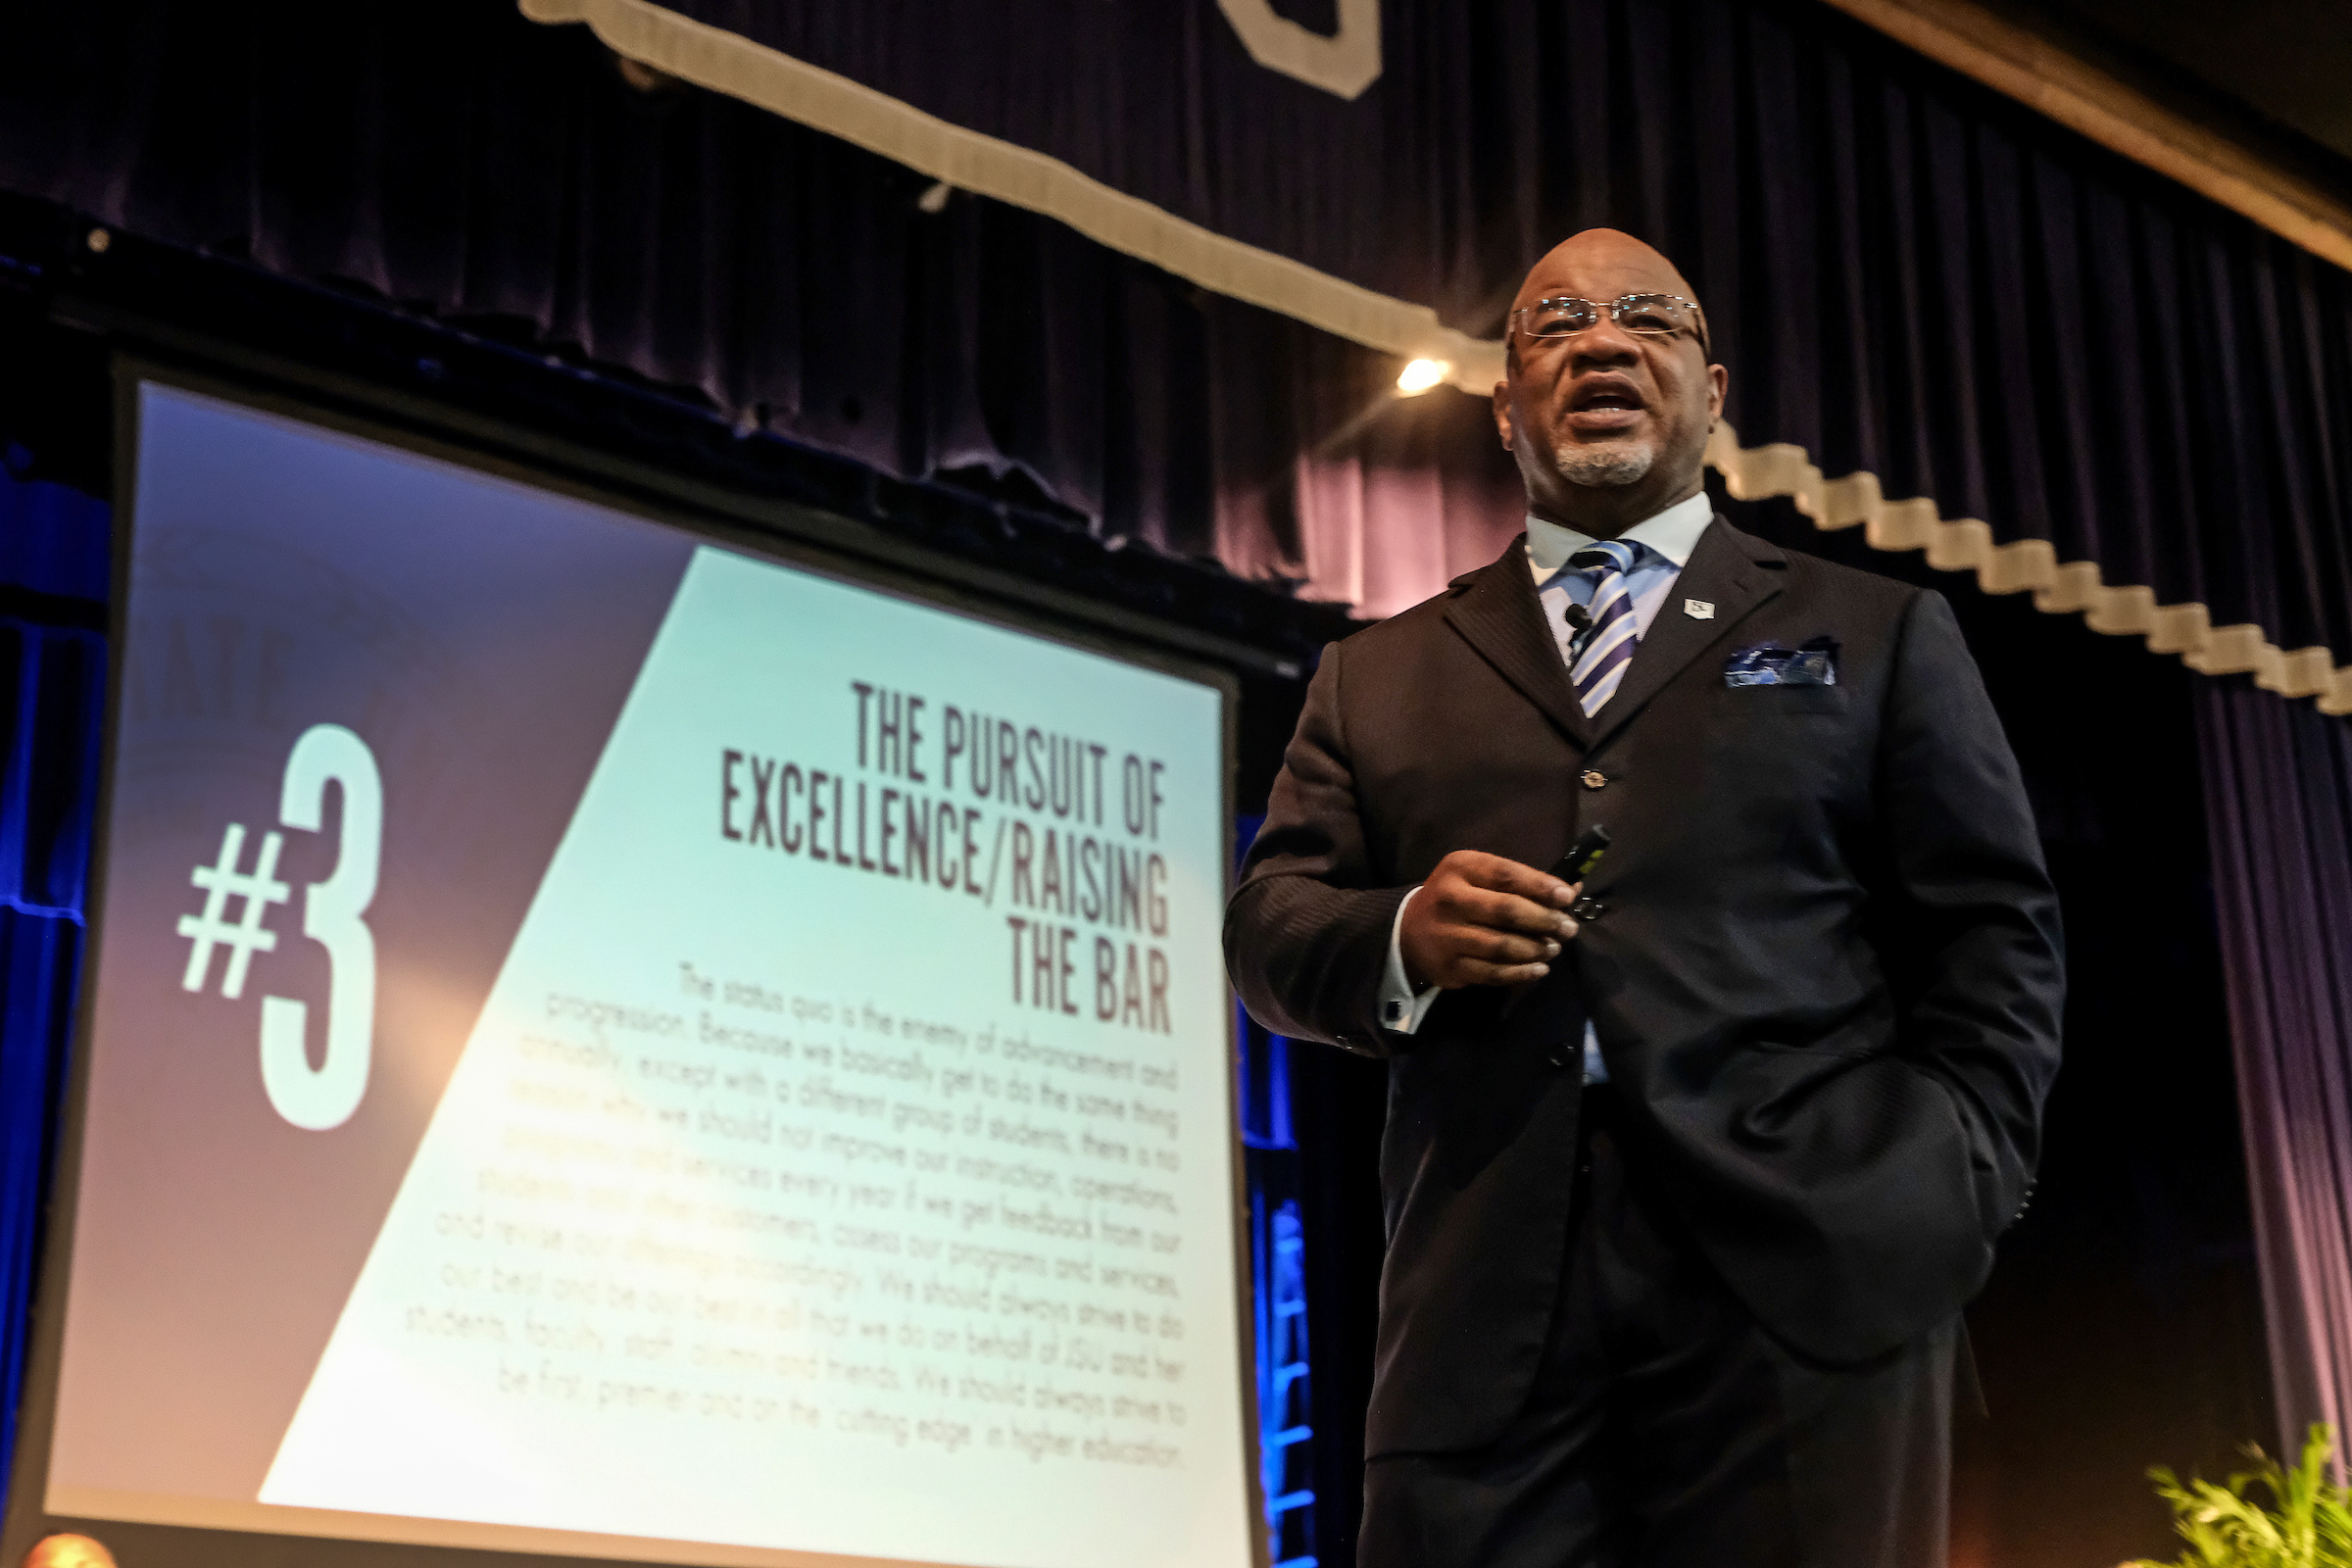 JSU President William B. Bynum Jr. outlines his goals for transforming JSU through planning and prioritization. He delivered the keynote address during the first of a two-day Fall Faculty and Staff Seminar. (Photo by Charles A. Smith/JSU)